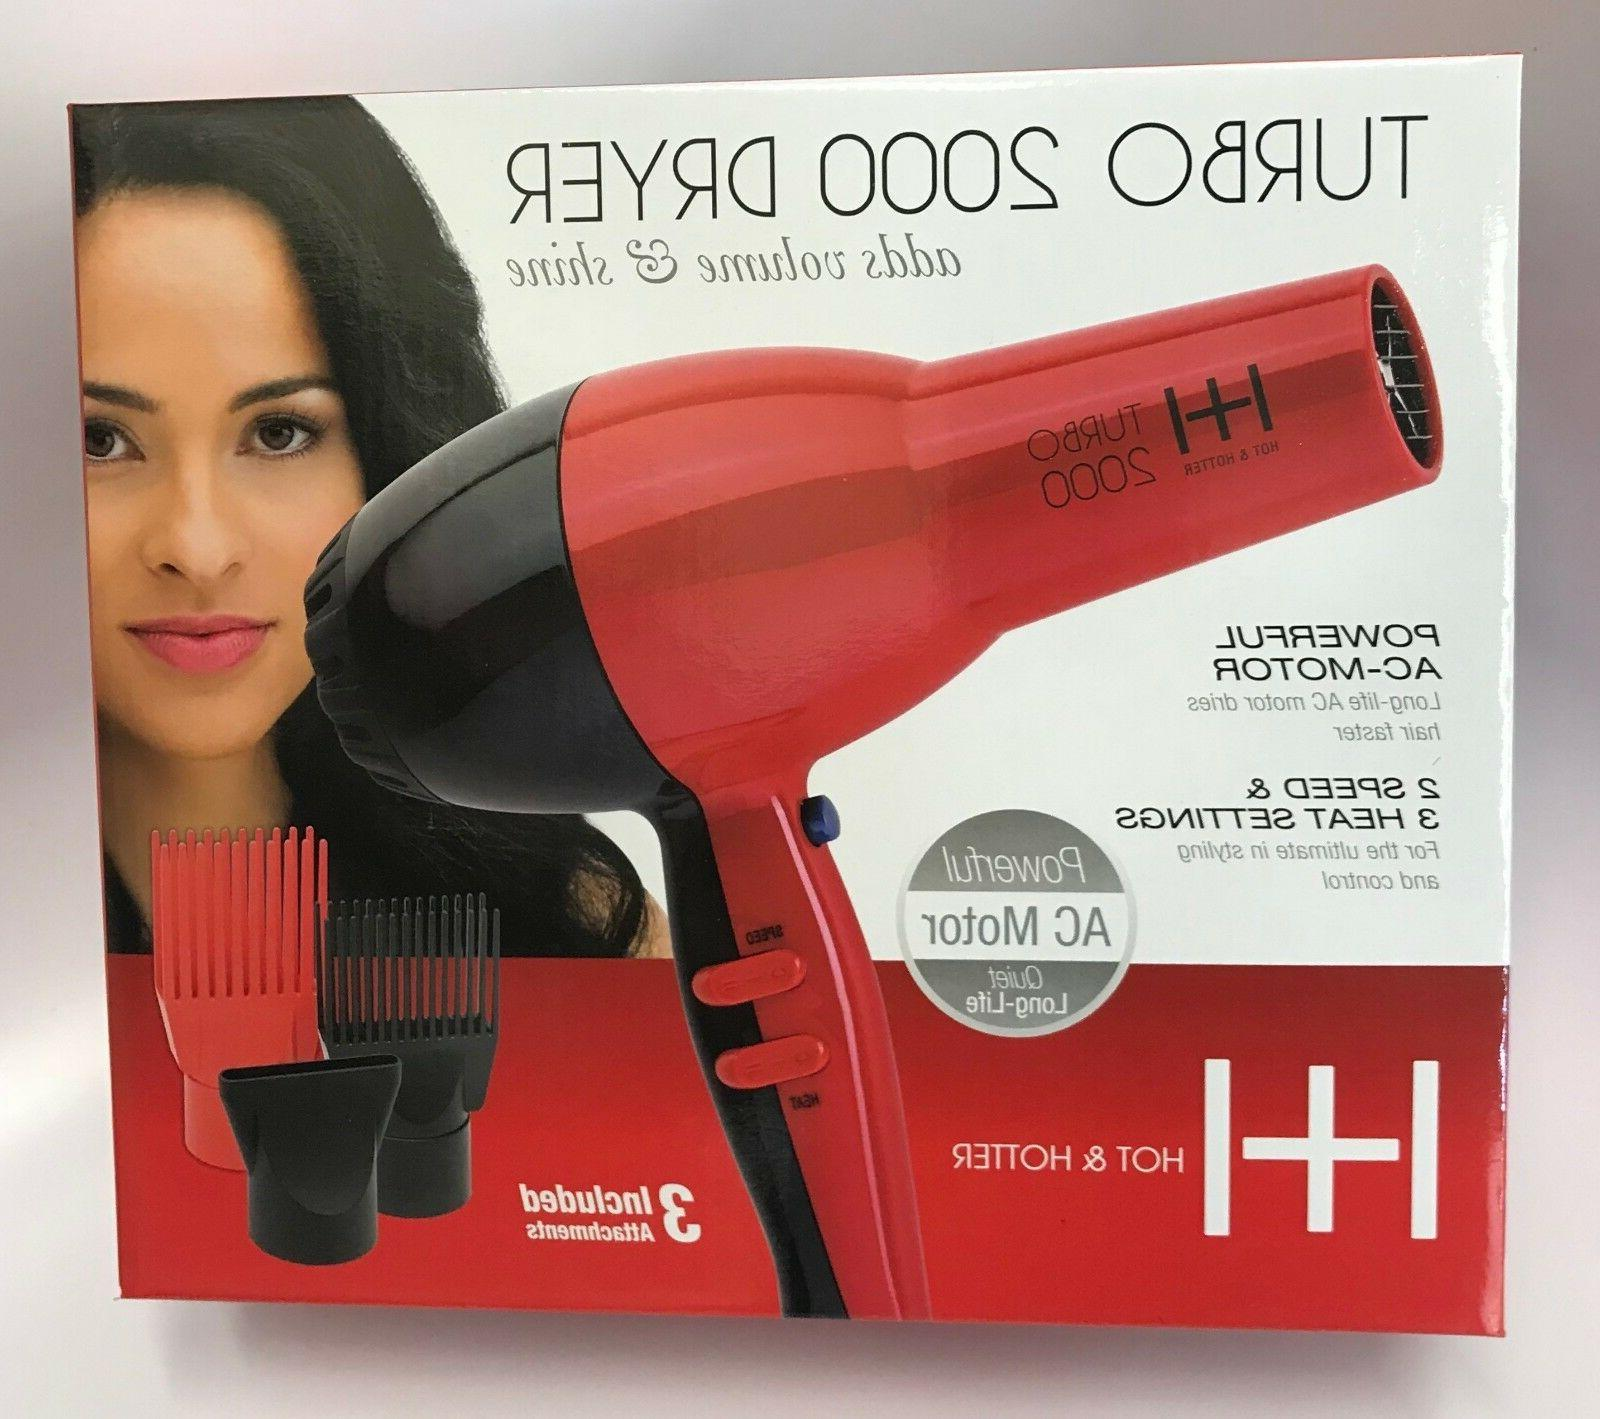 BLOW DRYER, HOT & HOTTER, BLOW NEW